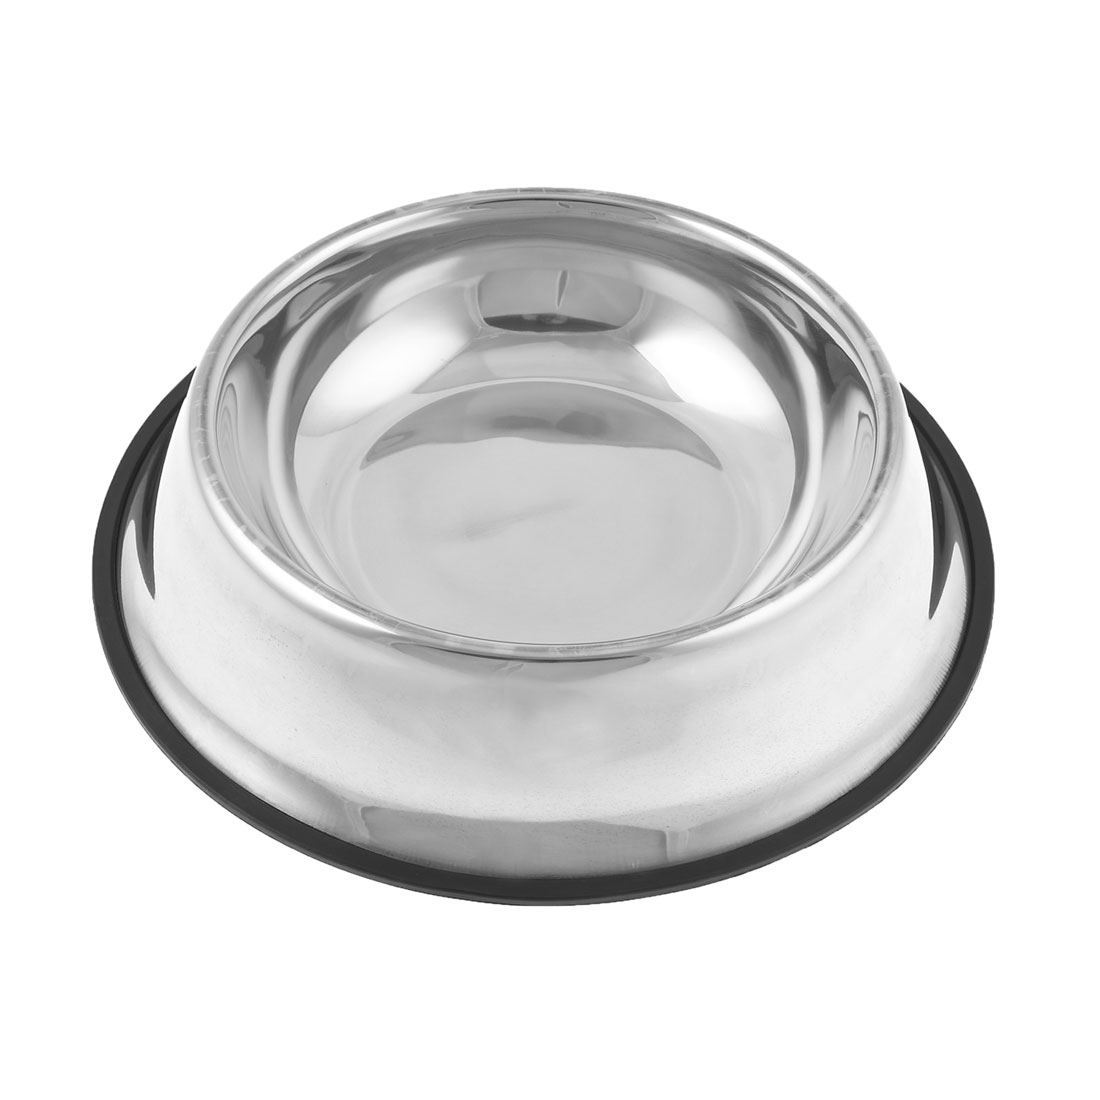 Unique Bargains Nonslip Rubber Ring Base Stainless Steel Cat and Dog Food Bowl